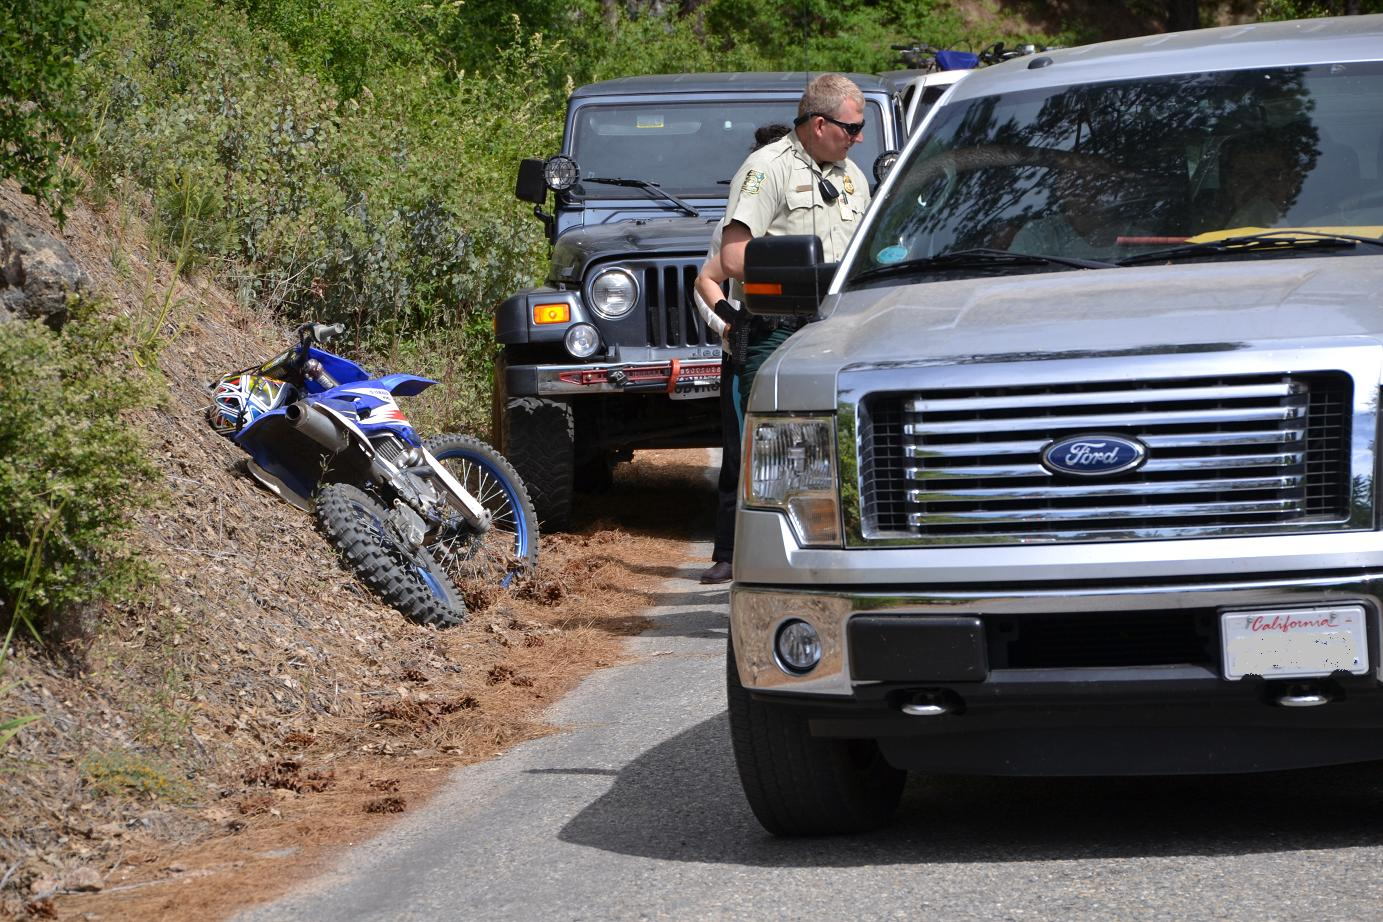 Dirt Bike and Jeep involved in accident